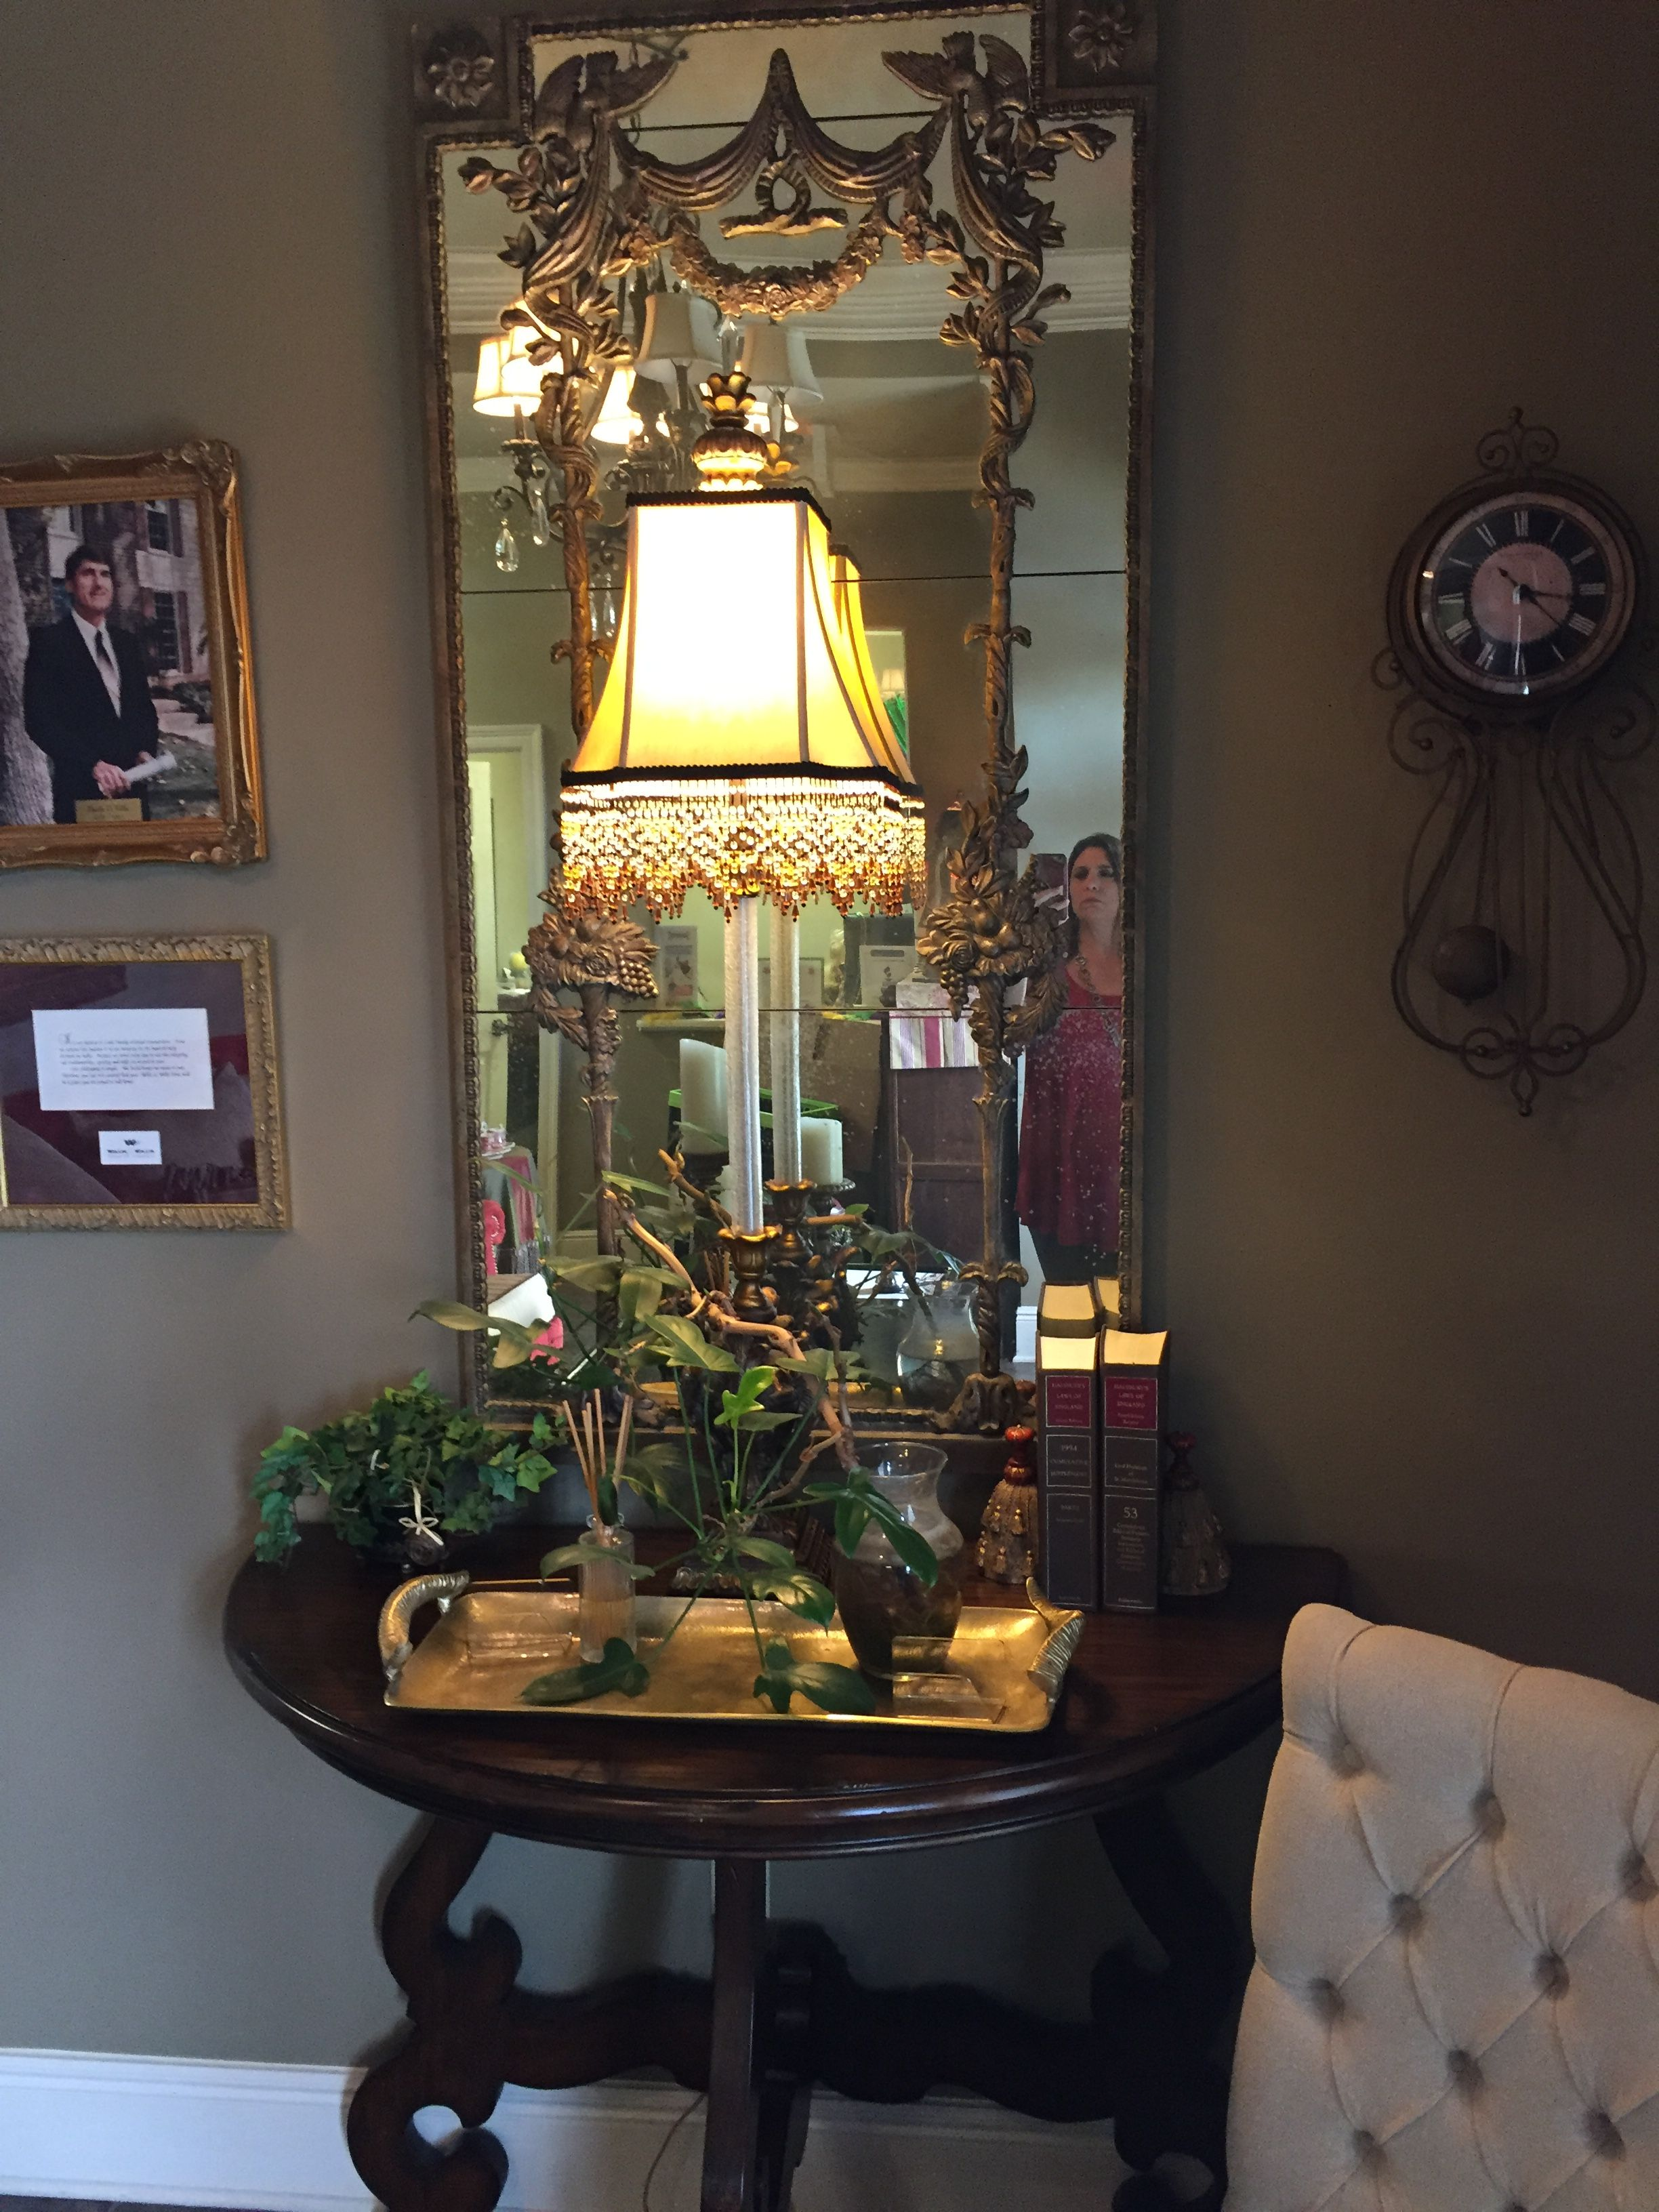 Pin by Robyn Eunice on foyers   French country decorating ...